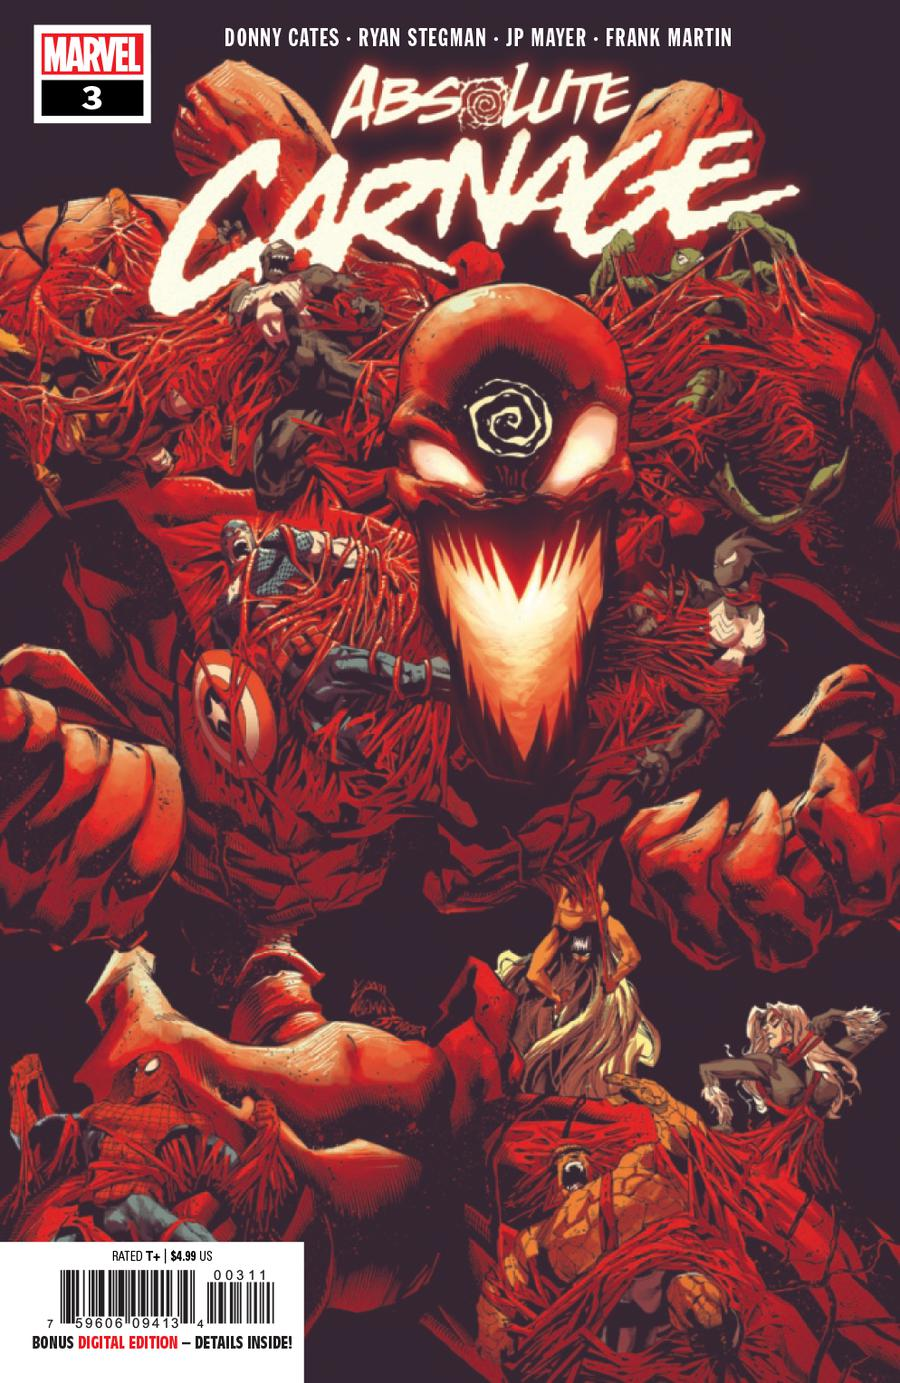 Absolute Carnage #3 Cover A 1st Ptg Regular Ryan Stegman Cover